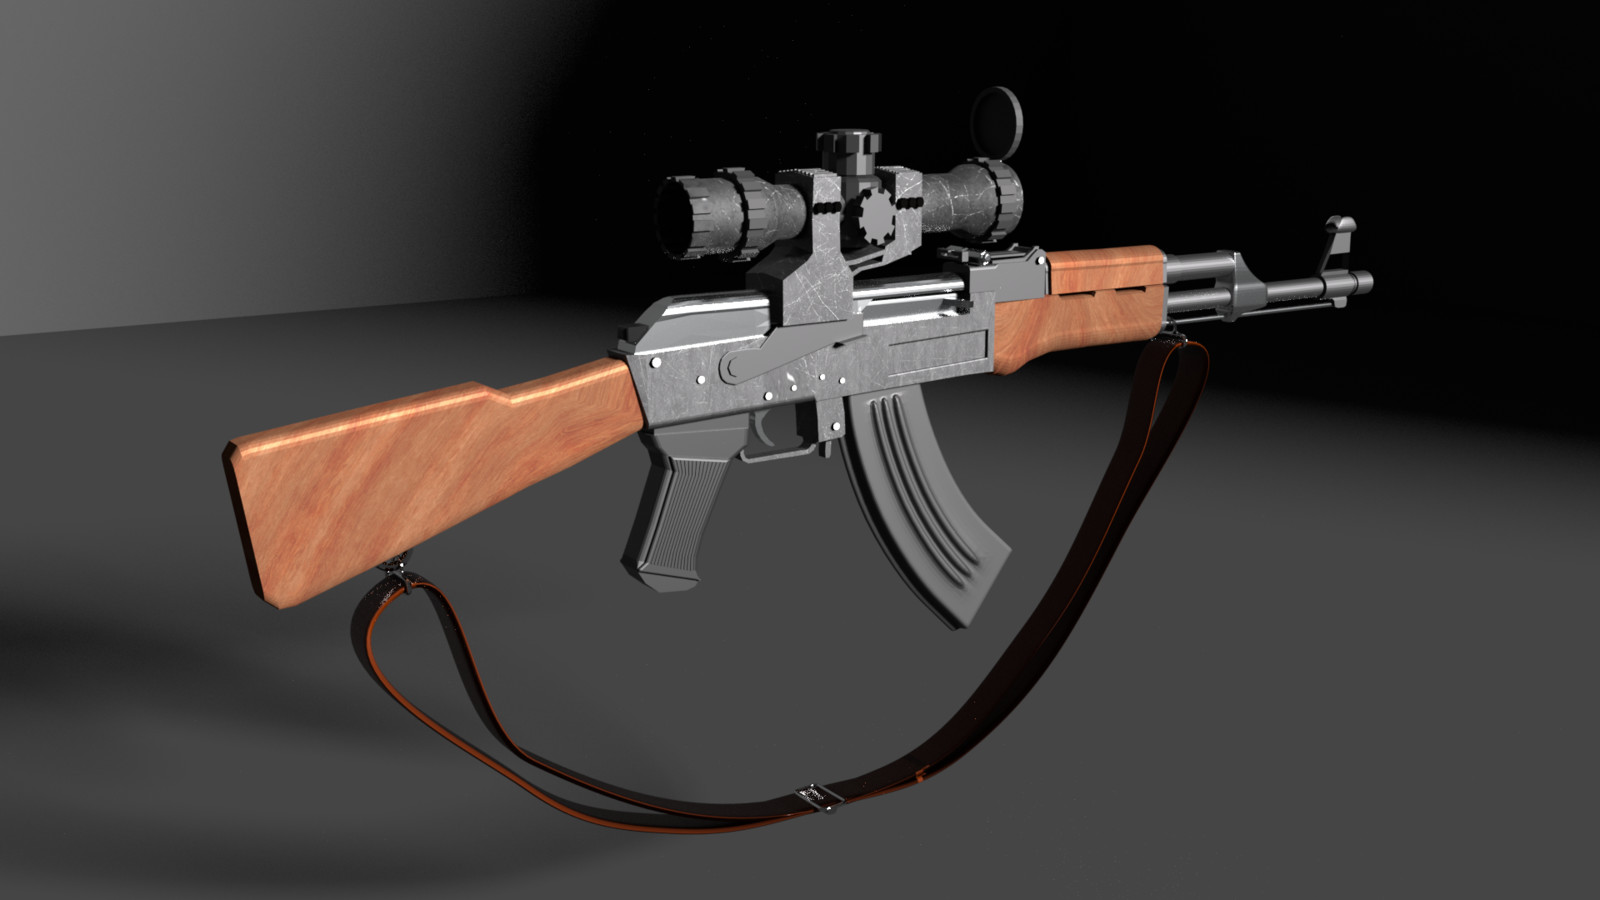 With Wood Stock